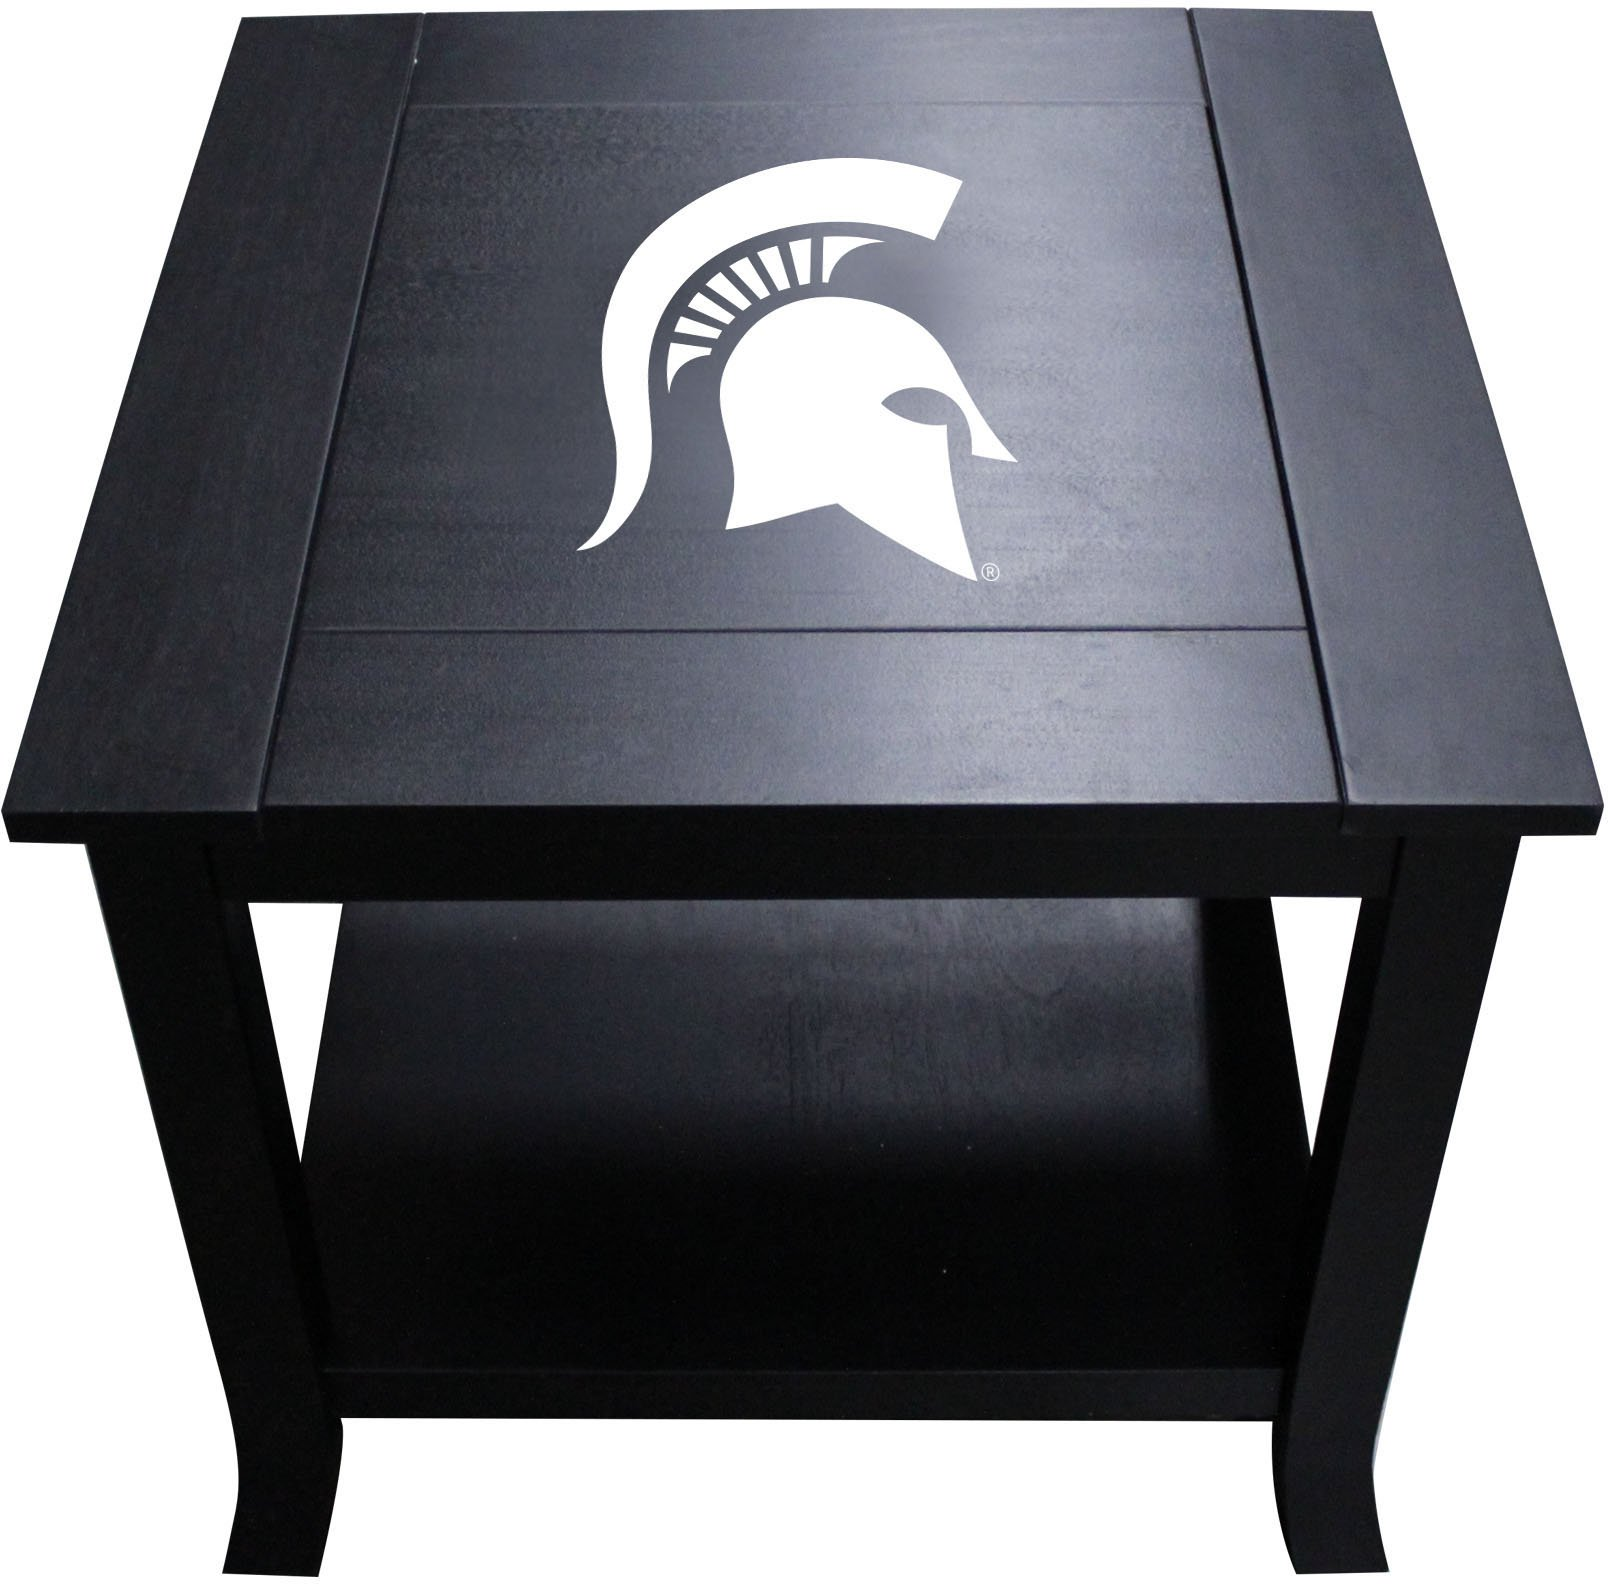 Imperial Officially Licensed NCAA Furniture: Hardwood Side/End Table, Michigan State Spartans by Imperial